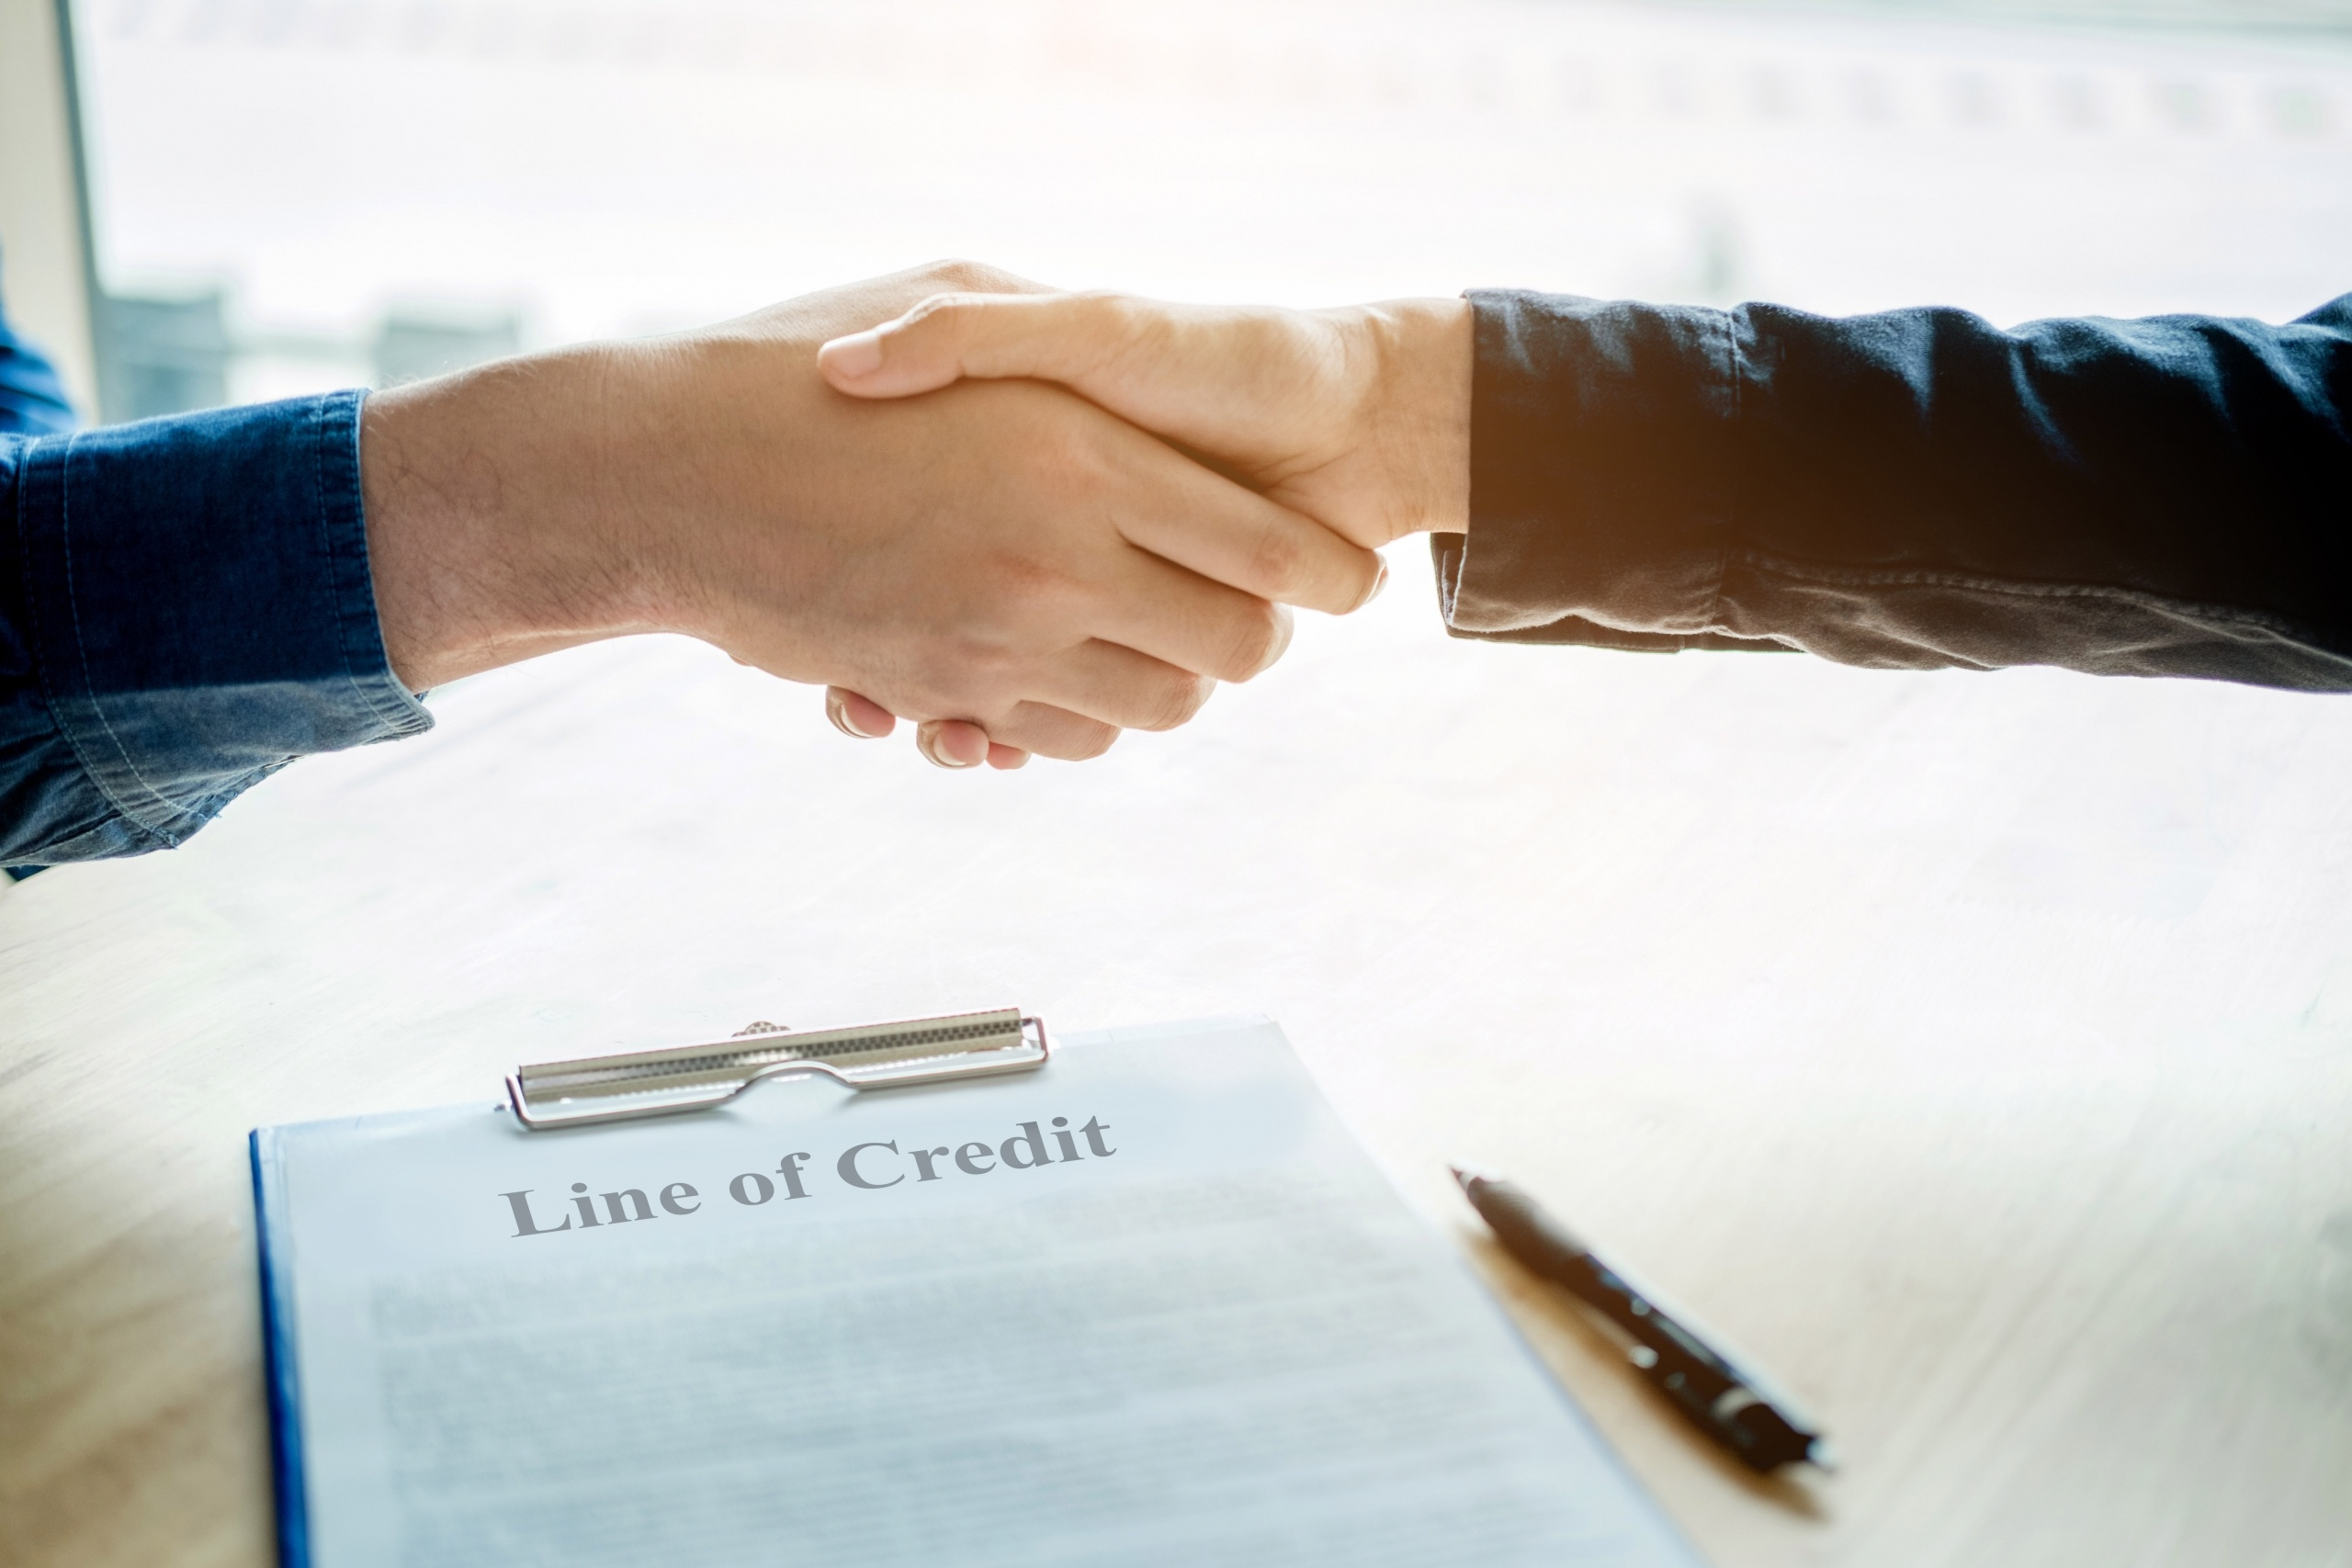 Advance Financial Line Of Credit